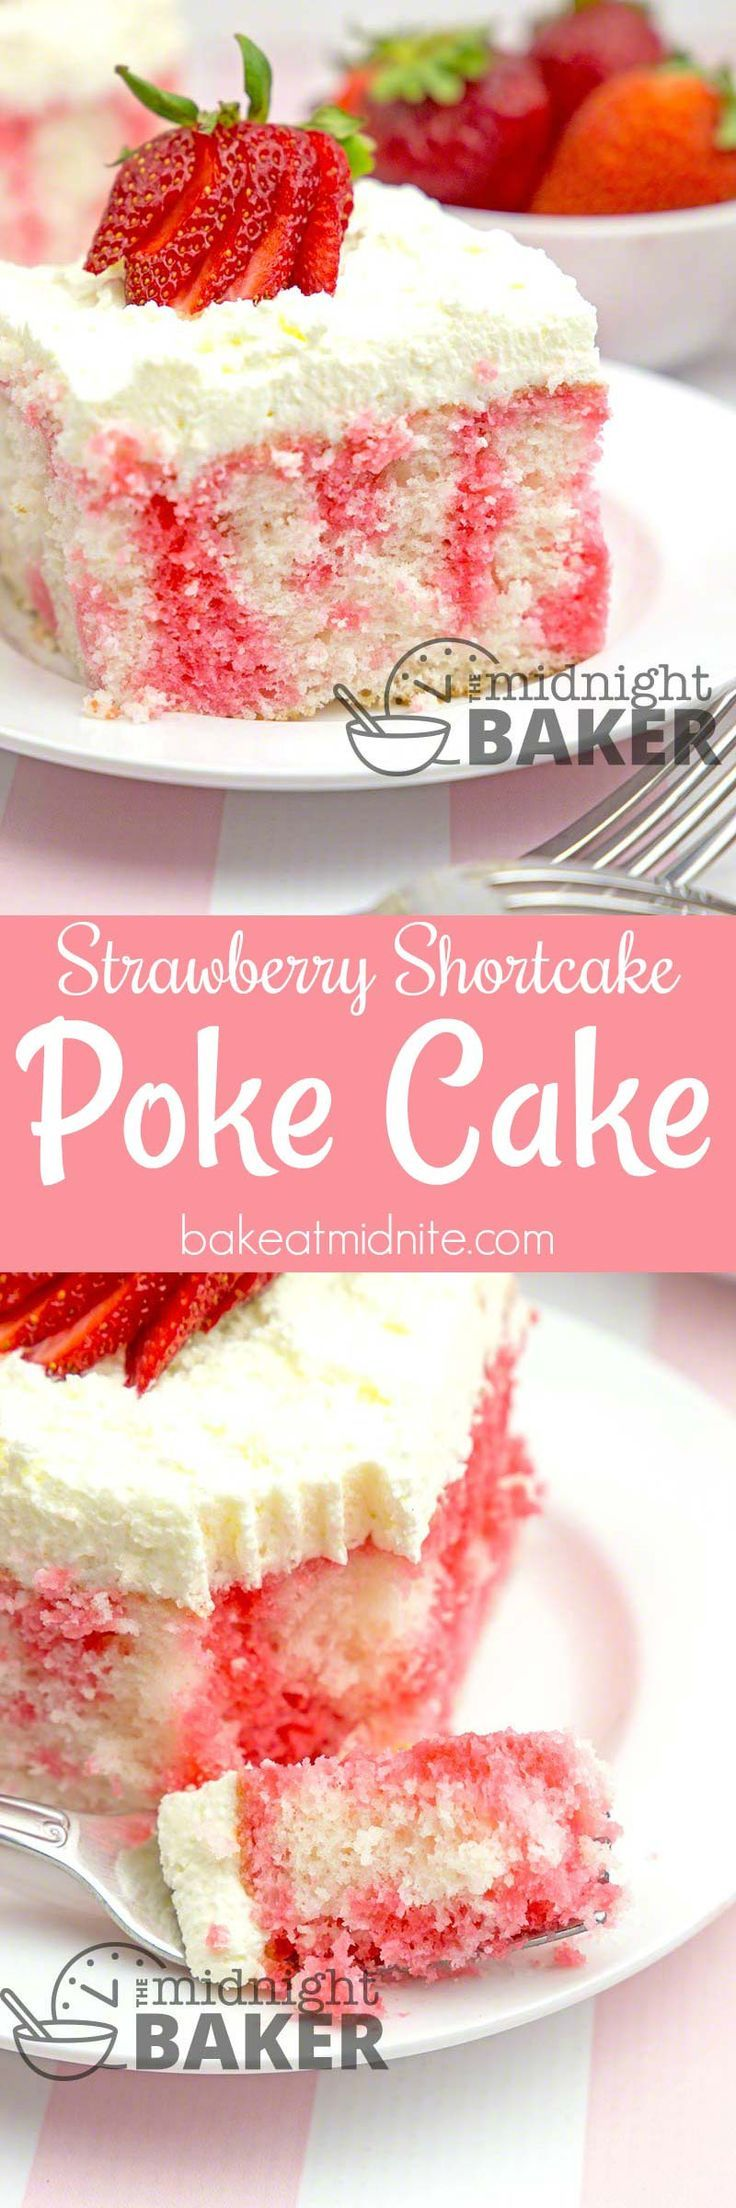 Here's the delicious flavor of strawberry shortcake in an easy-to-make poke cake. (Strawberry Dessert Recipes)